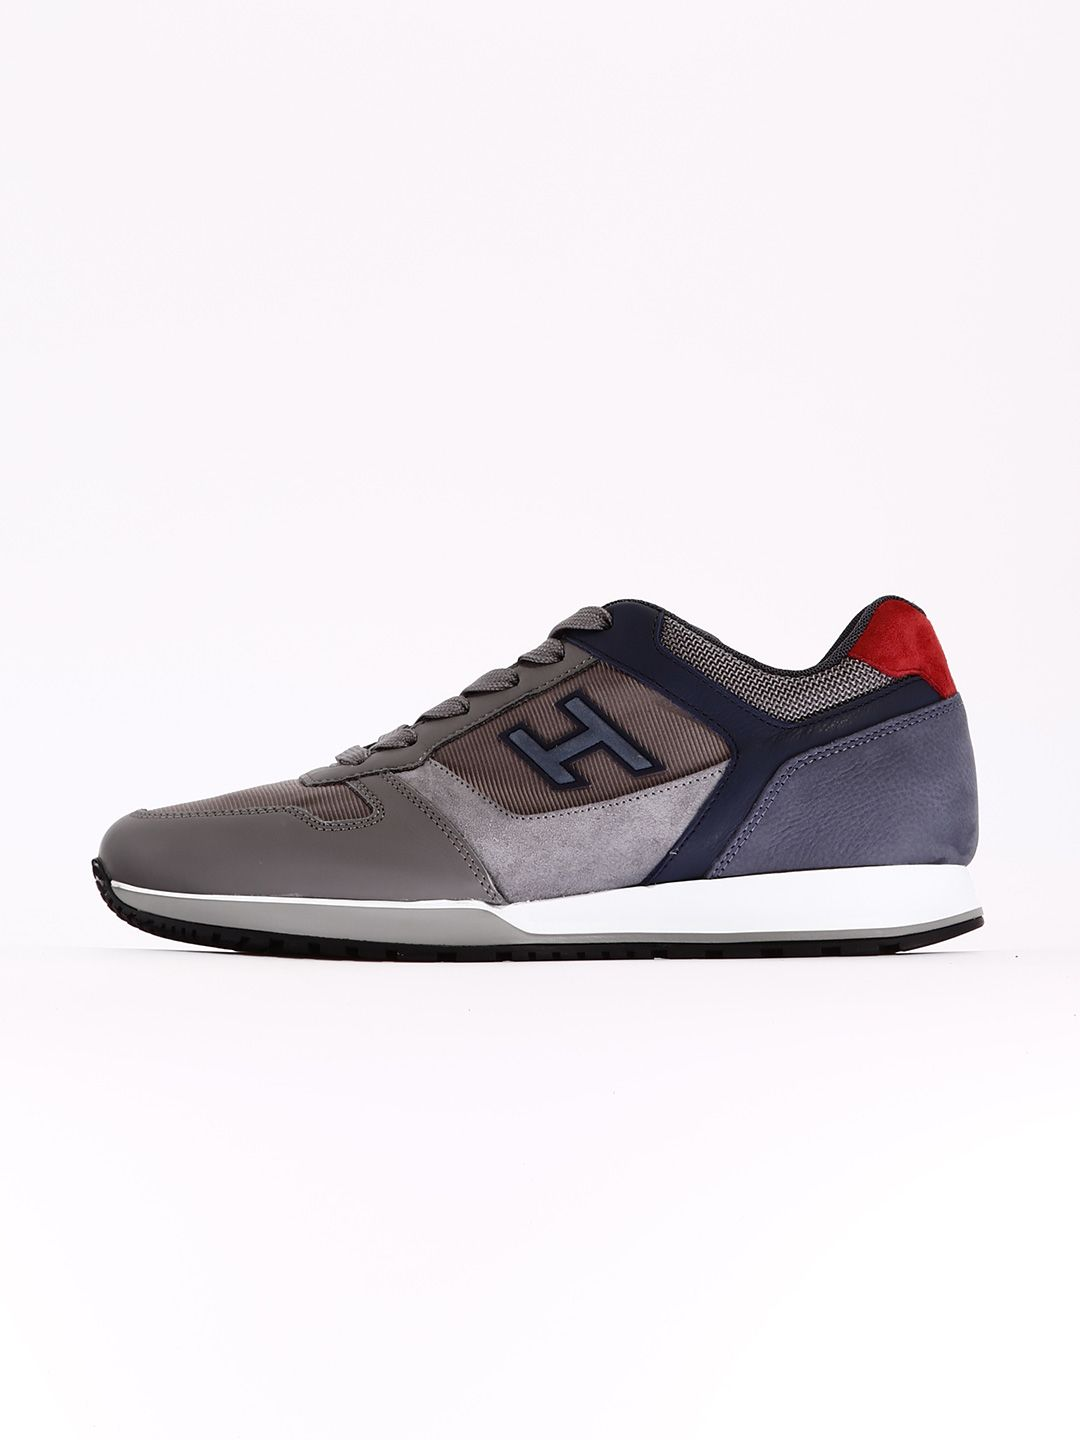 Hogan Sneakers H321 Leather And Suede